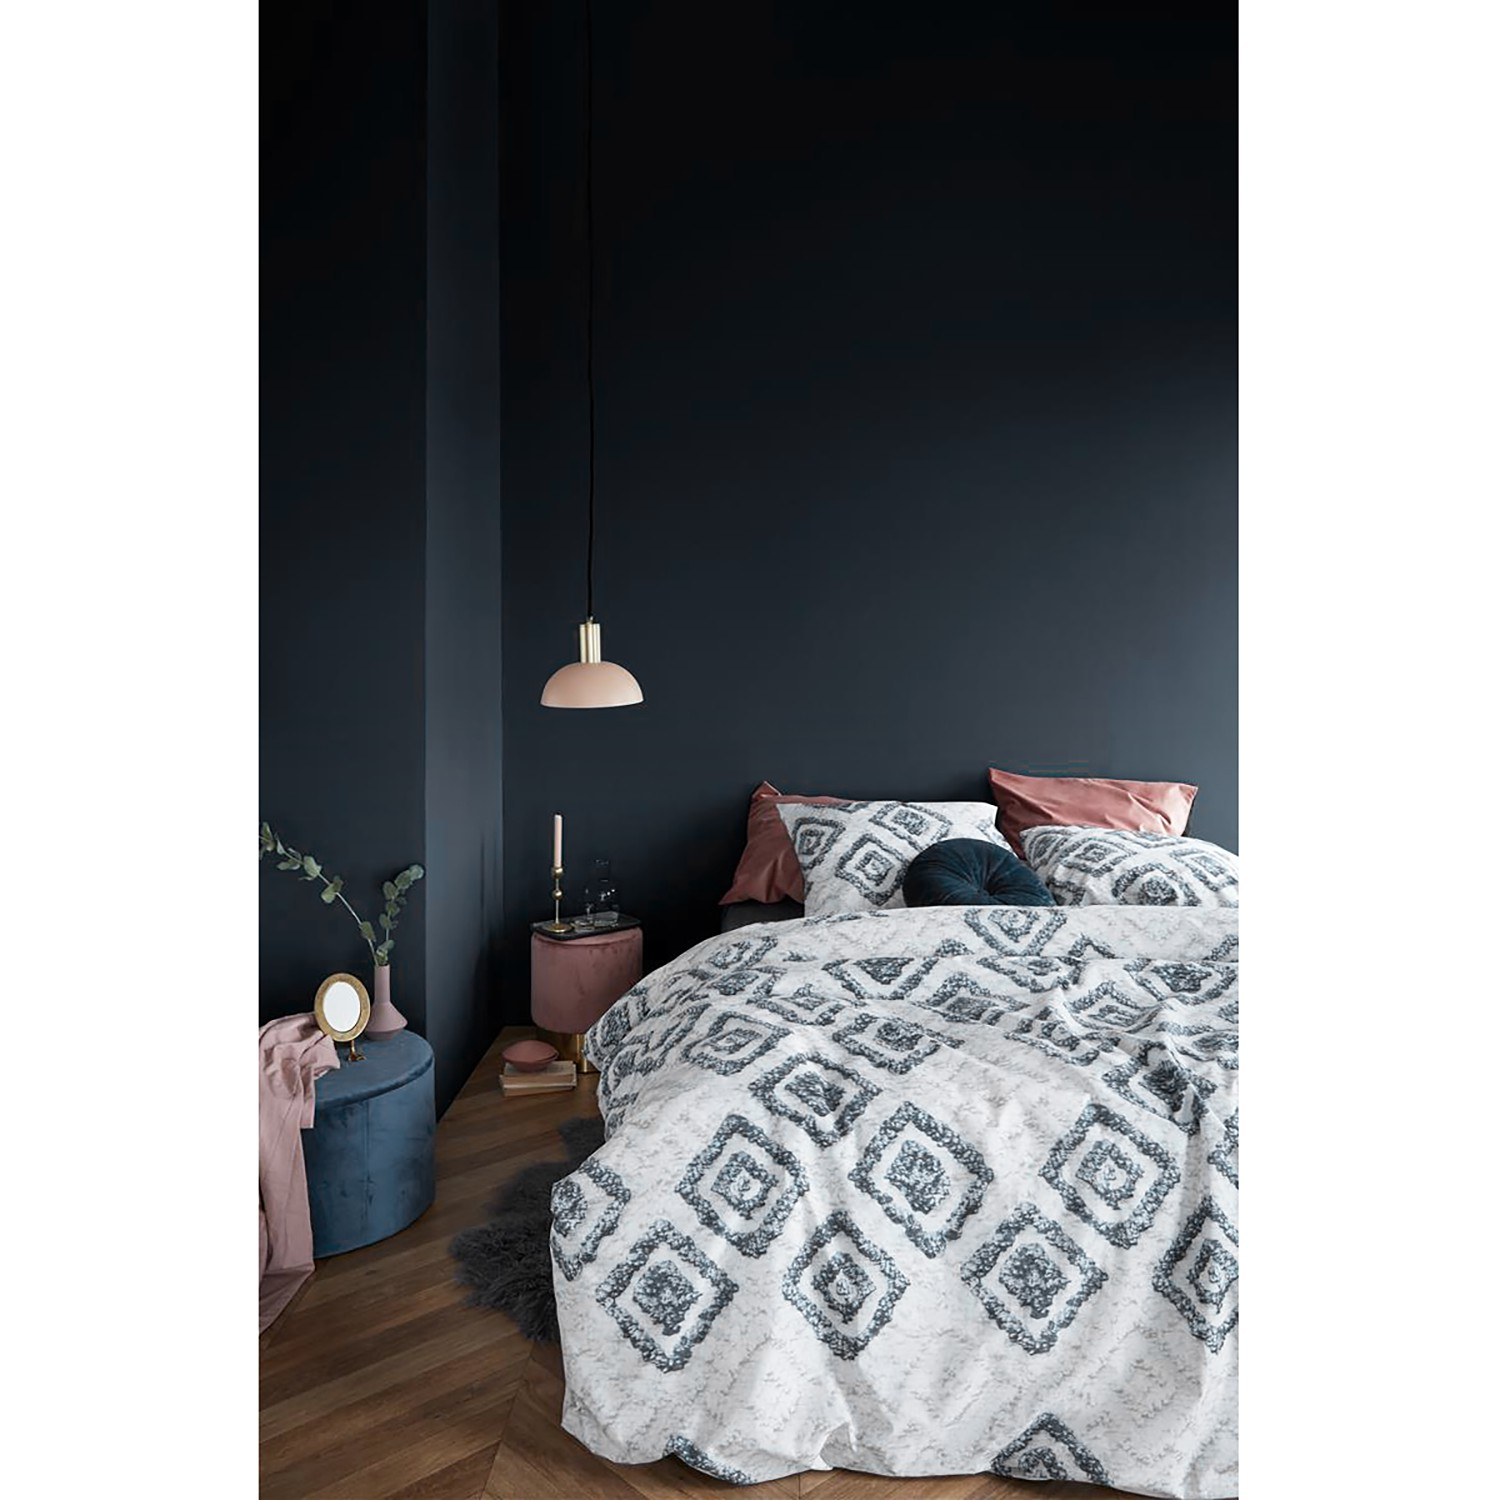 Home24 Beddengoed Heavy, At Home accessoires textiel